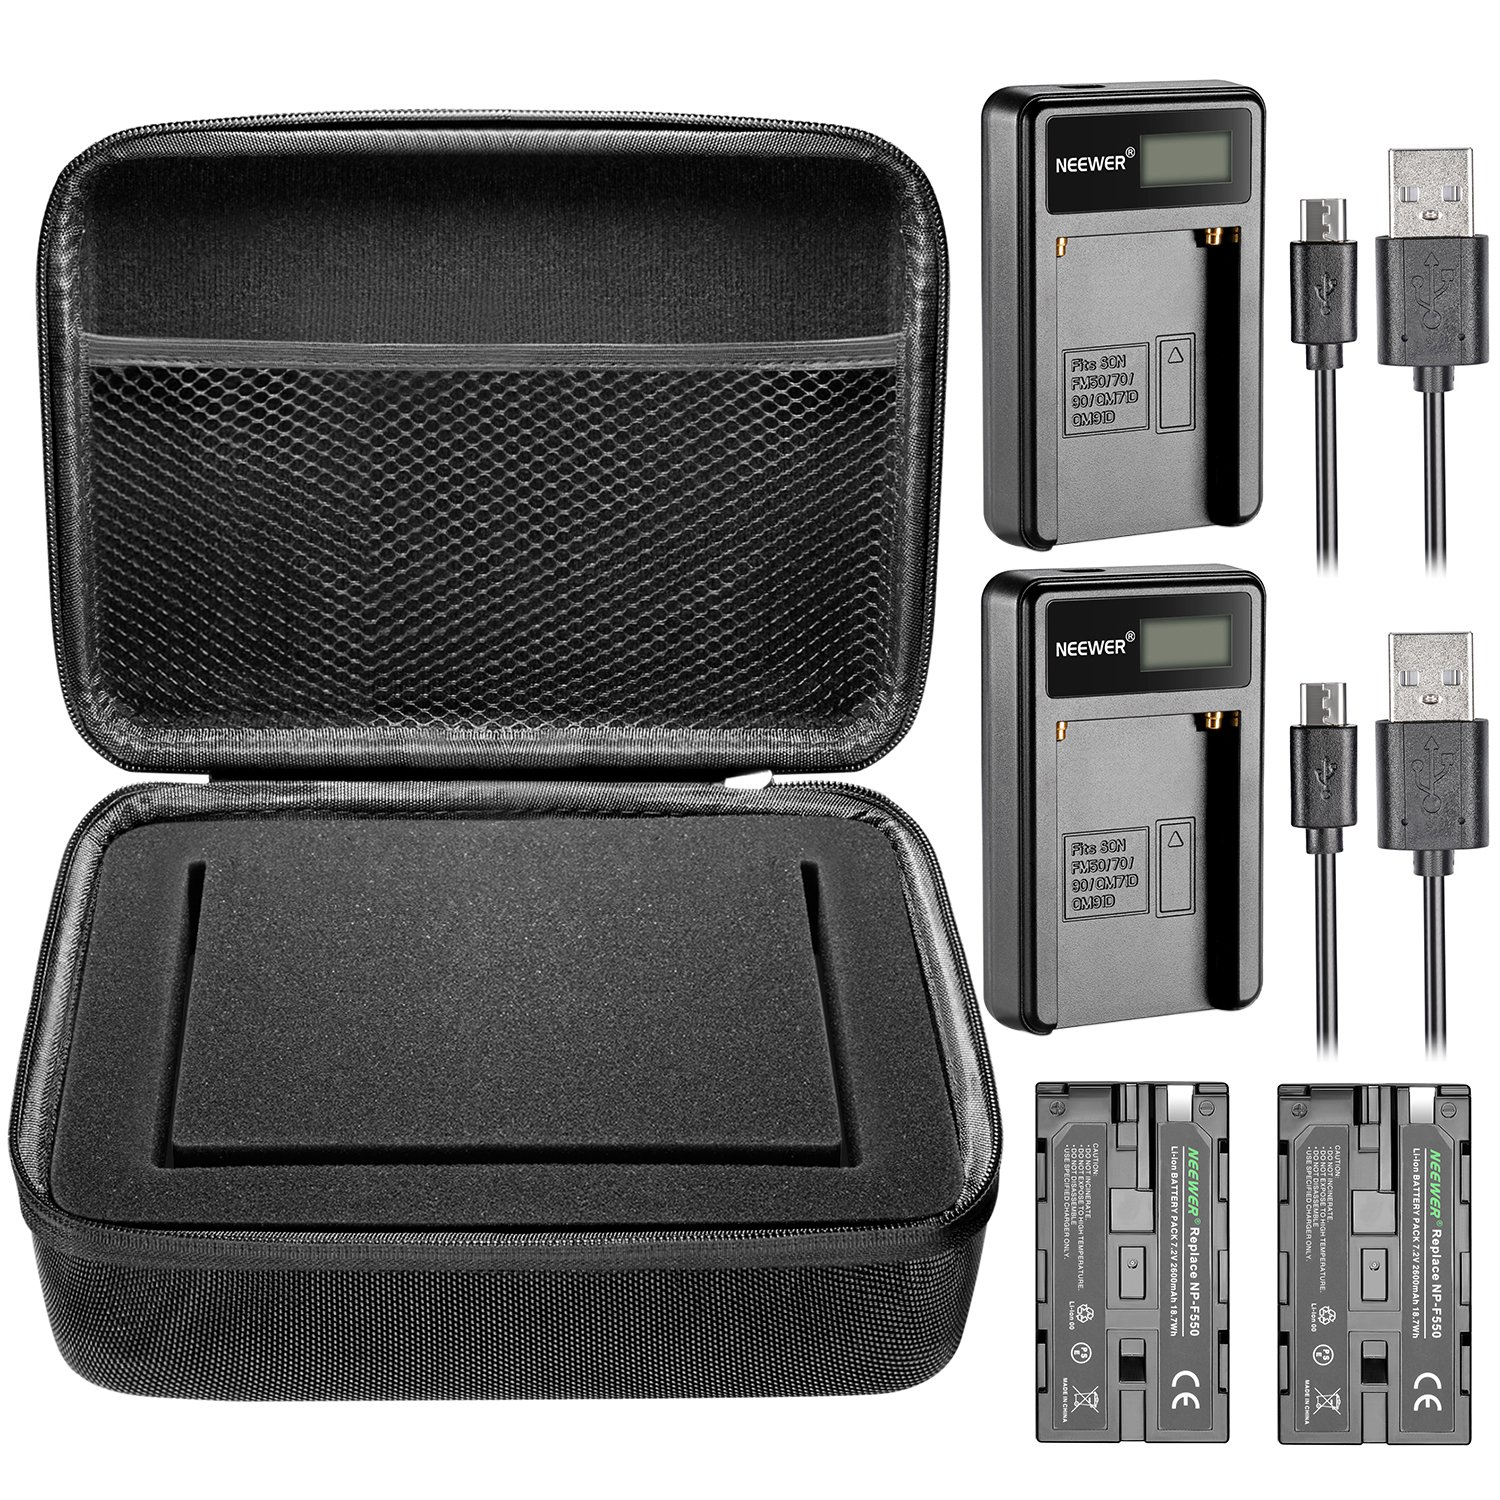 Neewer 7 inches Camera Field Monitor Accessory Kit for Neewer NW759 74K 760, Feelworld FW759 759P 760 74K and Others: Monitor Carrying Case,2 Pieces NP-F550 Replacement Battery,2 Pieces USB Charger